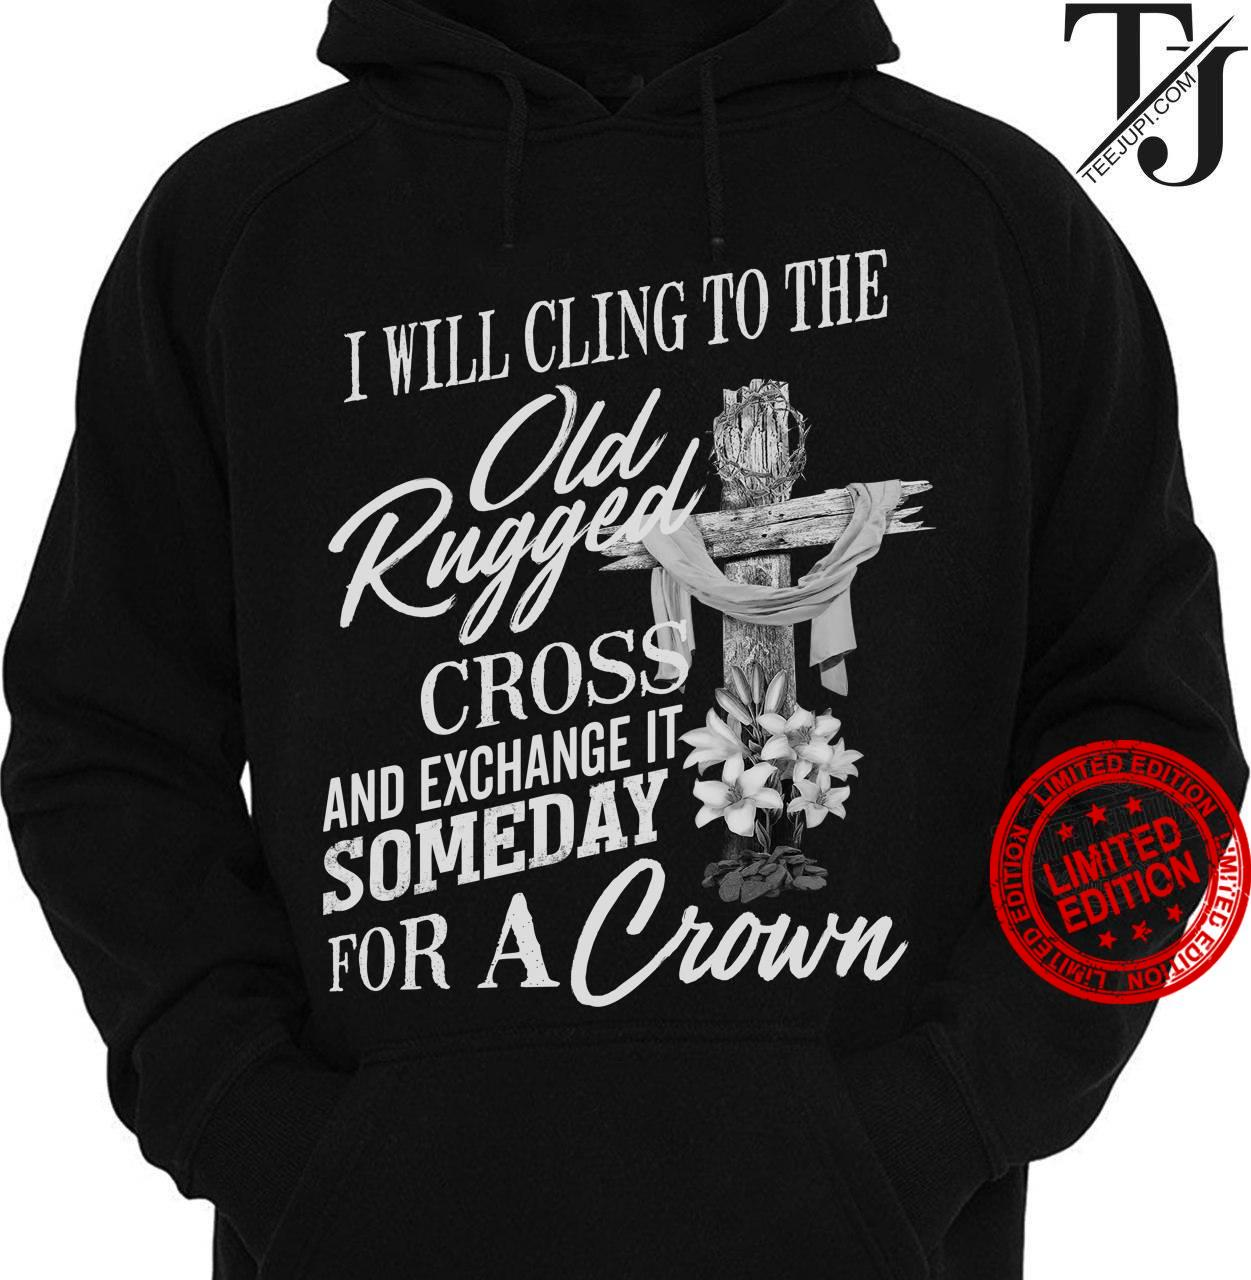 I Will Sling To The Old Rugged Cross And Exchange It Someday For A Crown Shirt